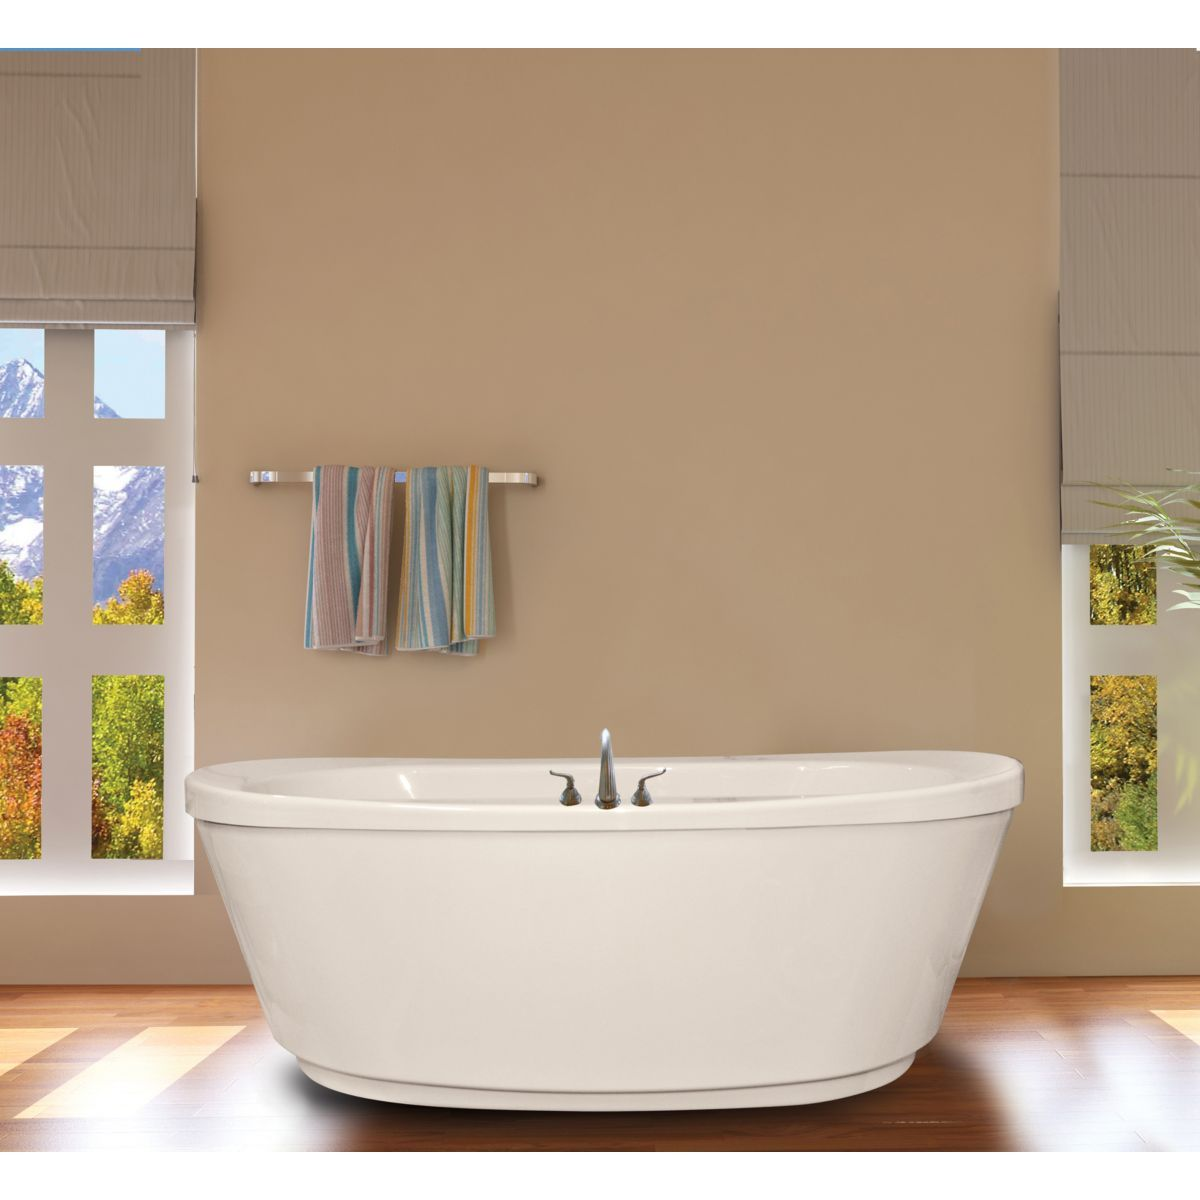 Hydromassage Ovale 6636cdfs Soothing Soak Tub With Access Panel Free Standing Tub Air Jet Tubs Whirlpool Tub